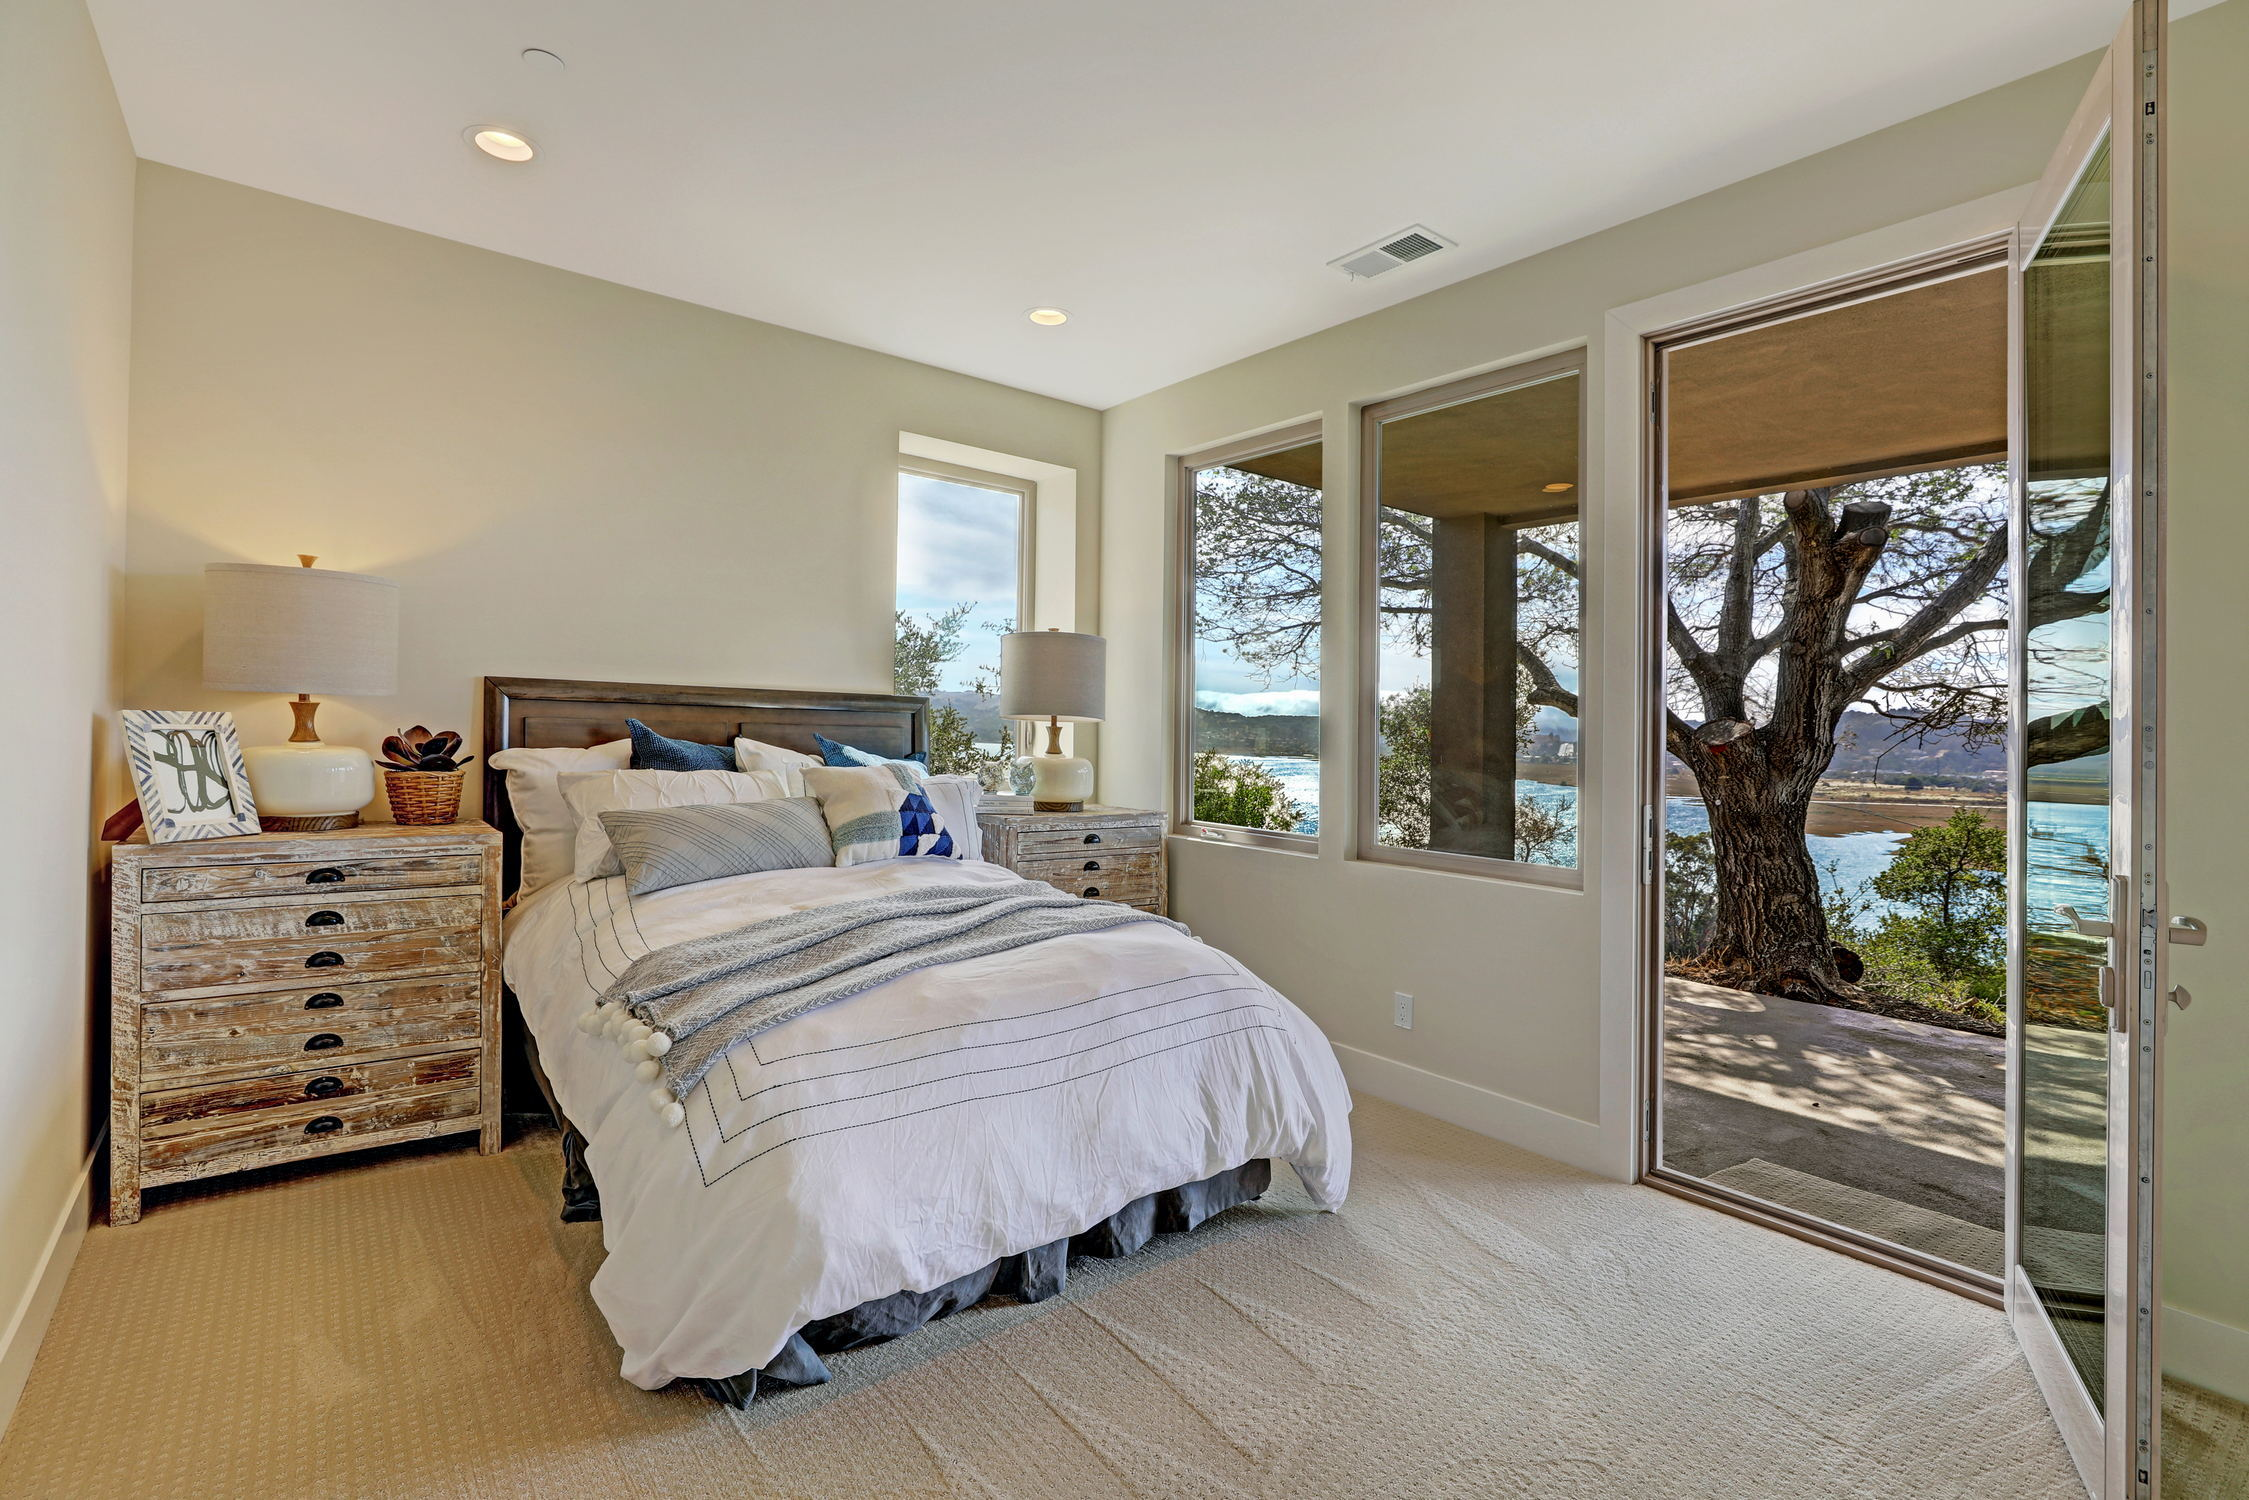 31 Drakes Cove, Larkspur Homes for Sale55 MLS - Own Marin with Compass - Mill Valley Realtor.jpg